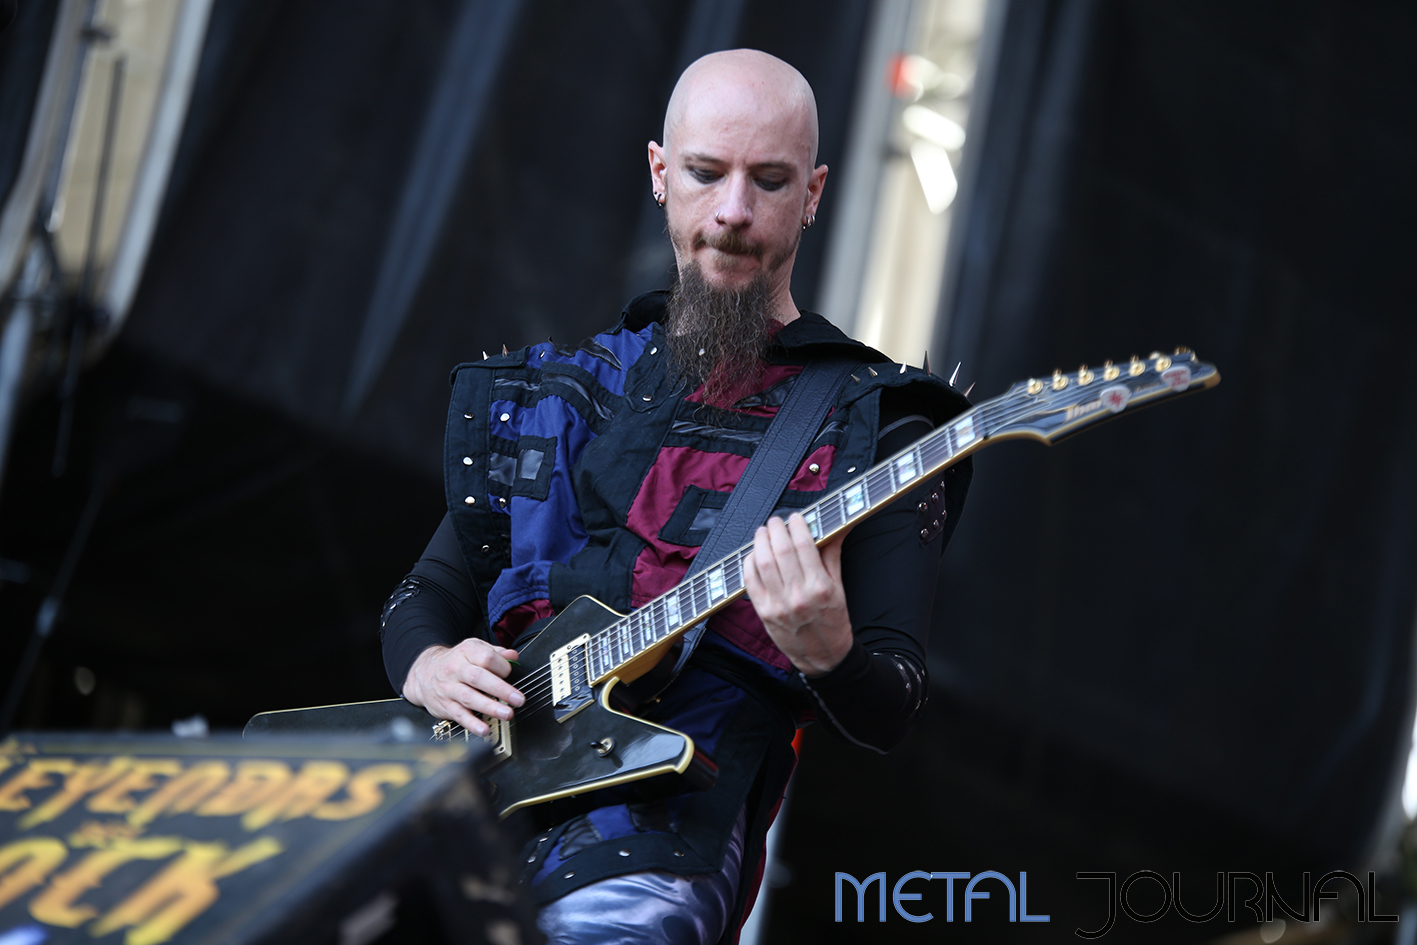 gloryhammer - leyendas del rock 2019 metal journal pic 6